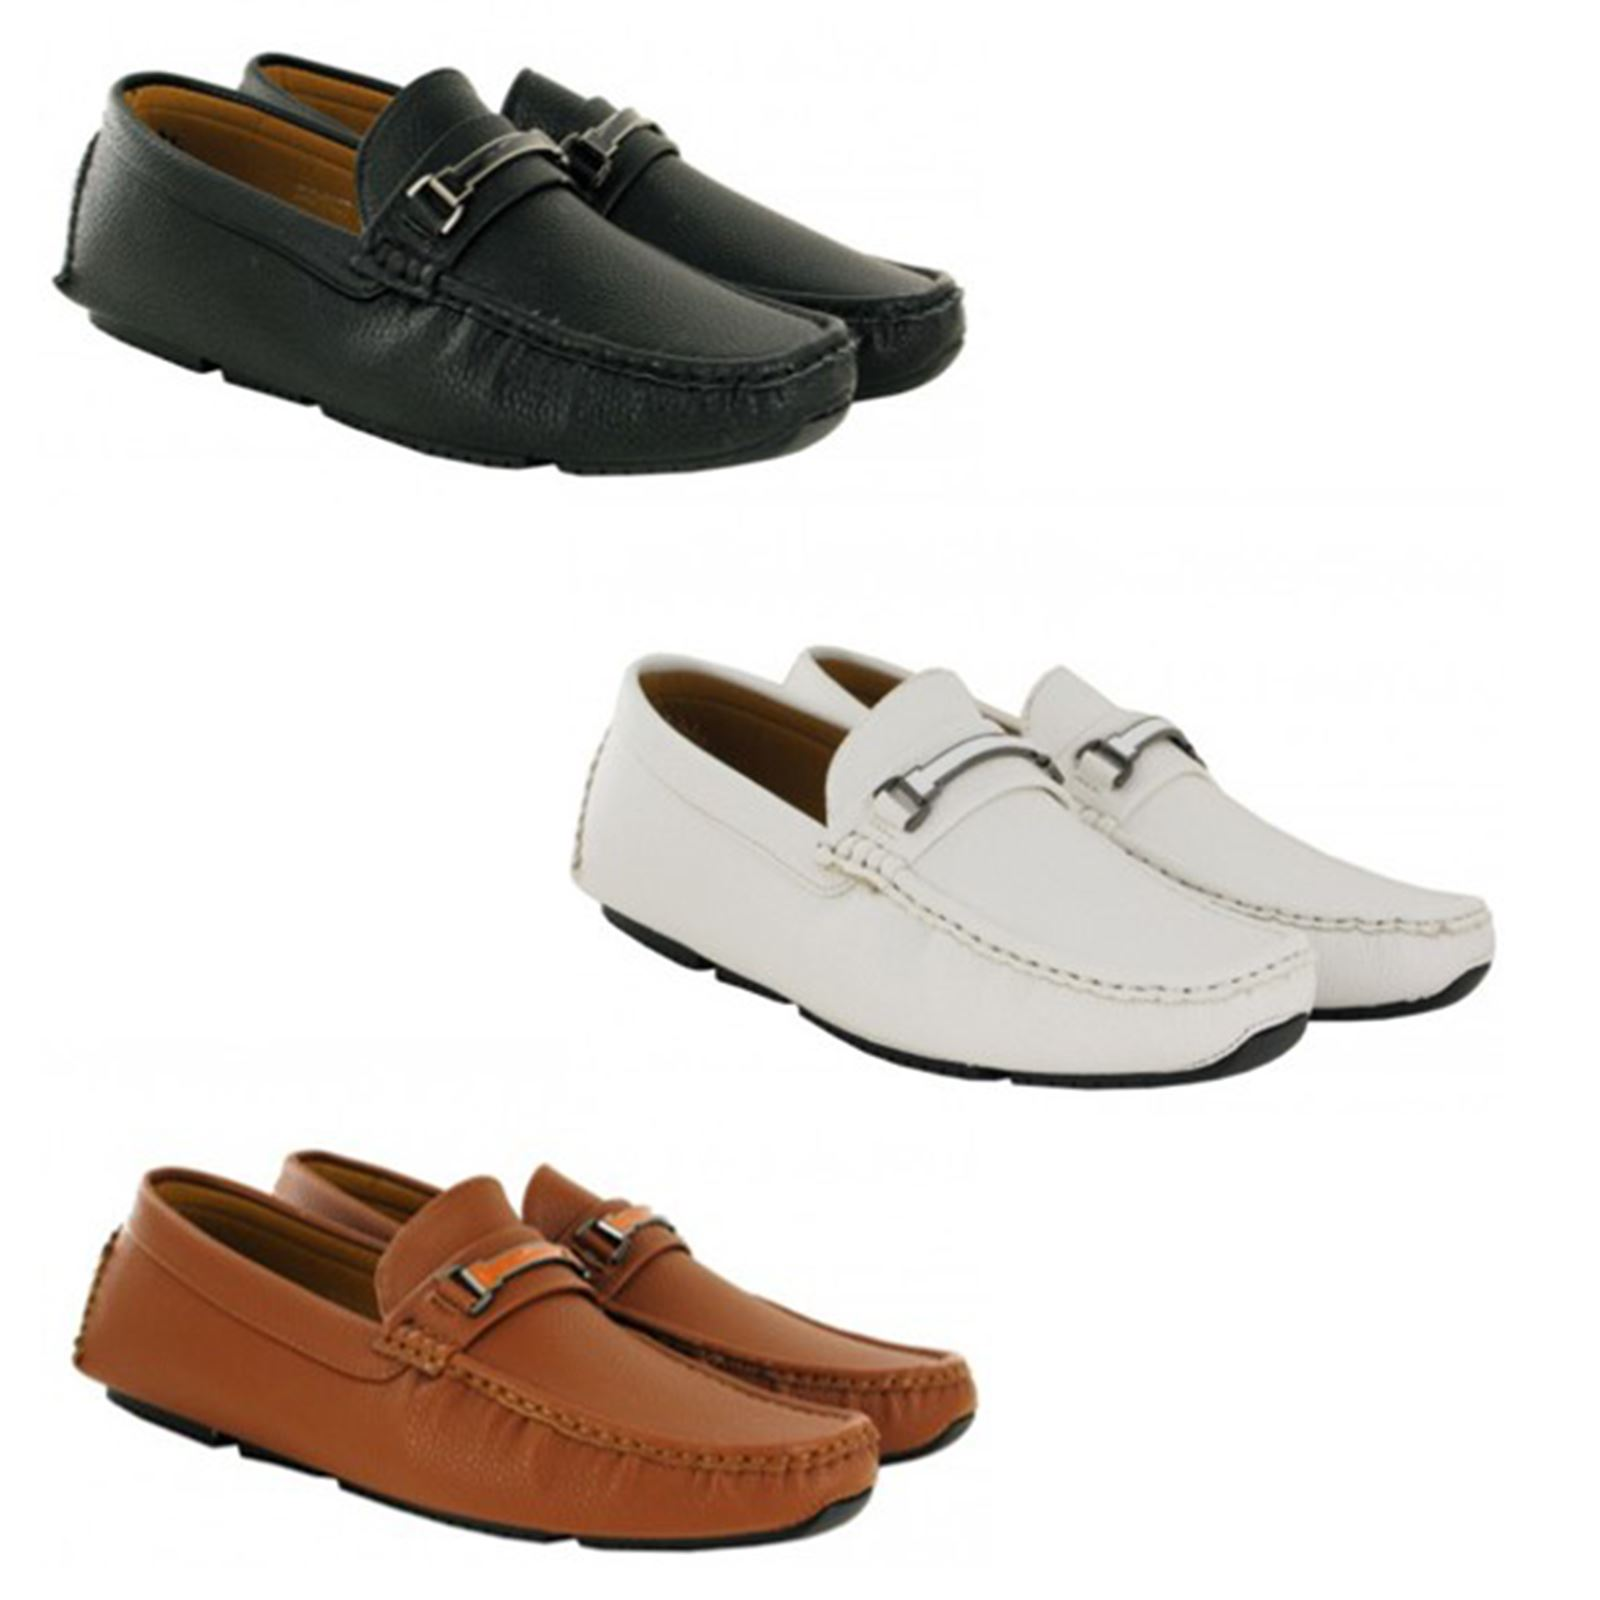 ae5054fec Details about Men Casual Leather Loafers Moccasins Slip Ons Shoes in Black